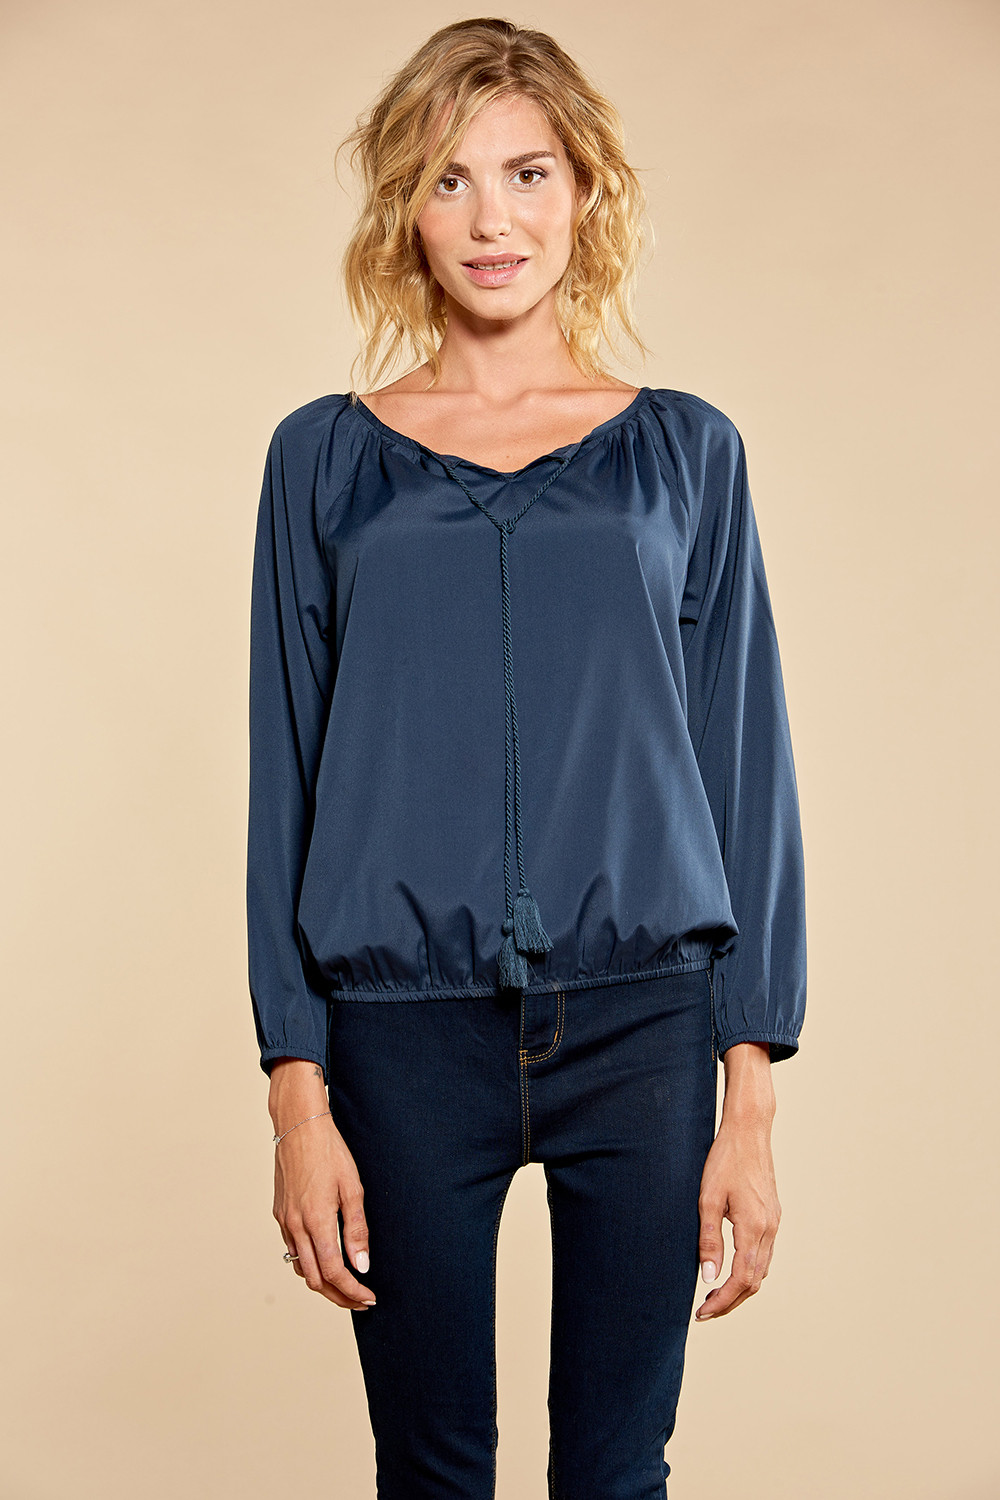 Blouse LUPITA - Couleur - Navy, Taille - XS